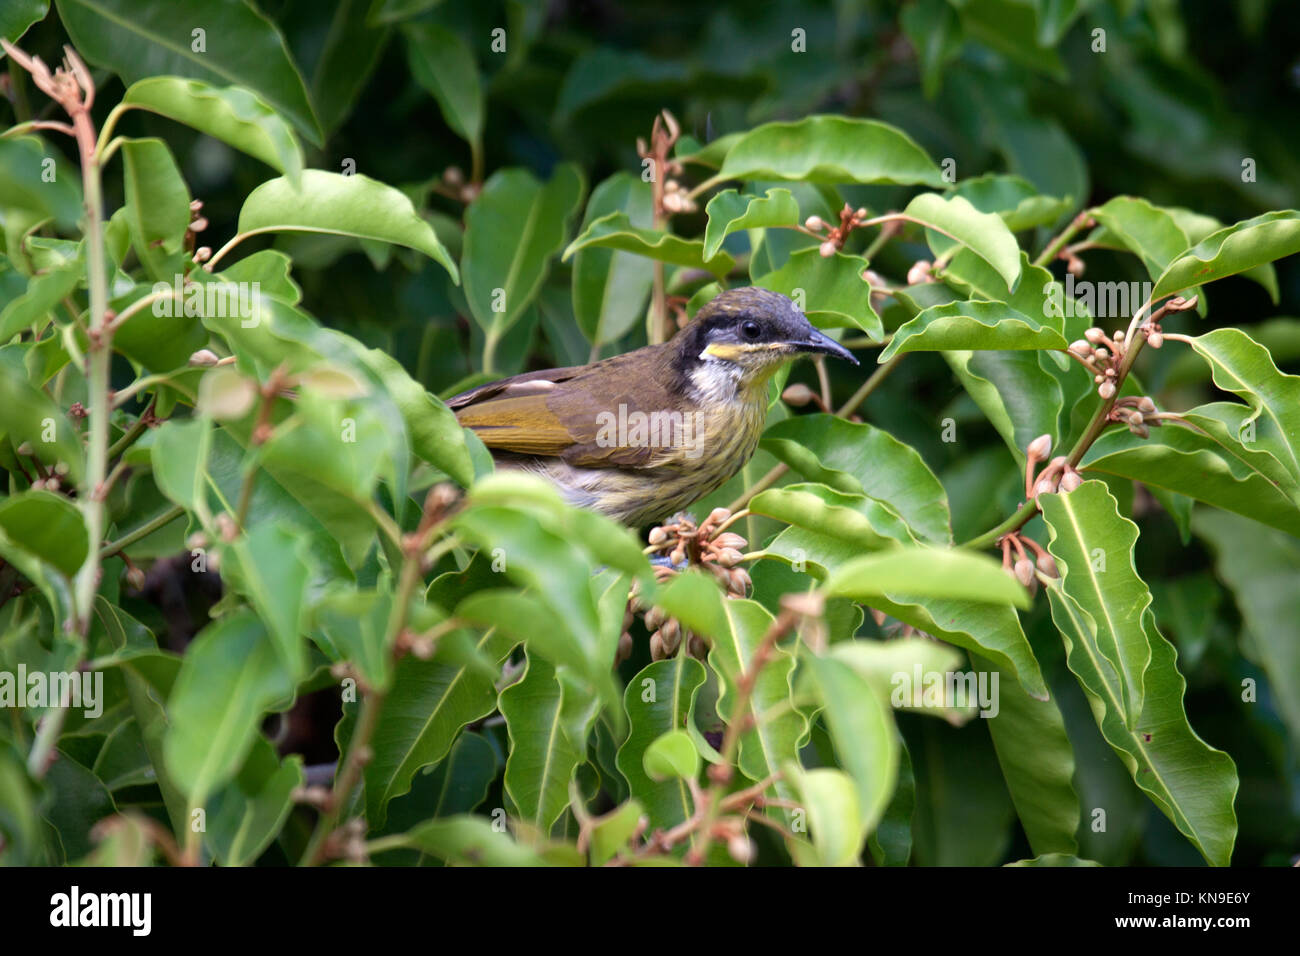 Varied honeyeater searching for nectar in tree canopy in Queensland Australia - Stock Image